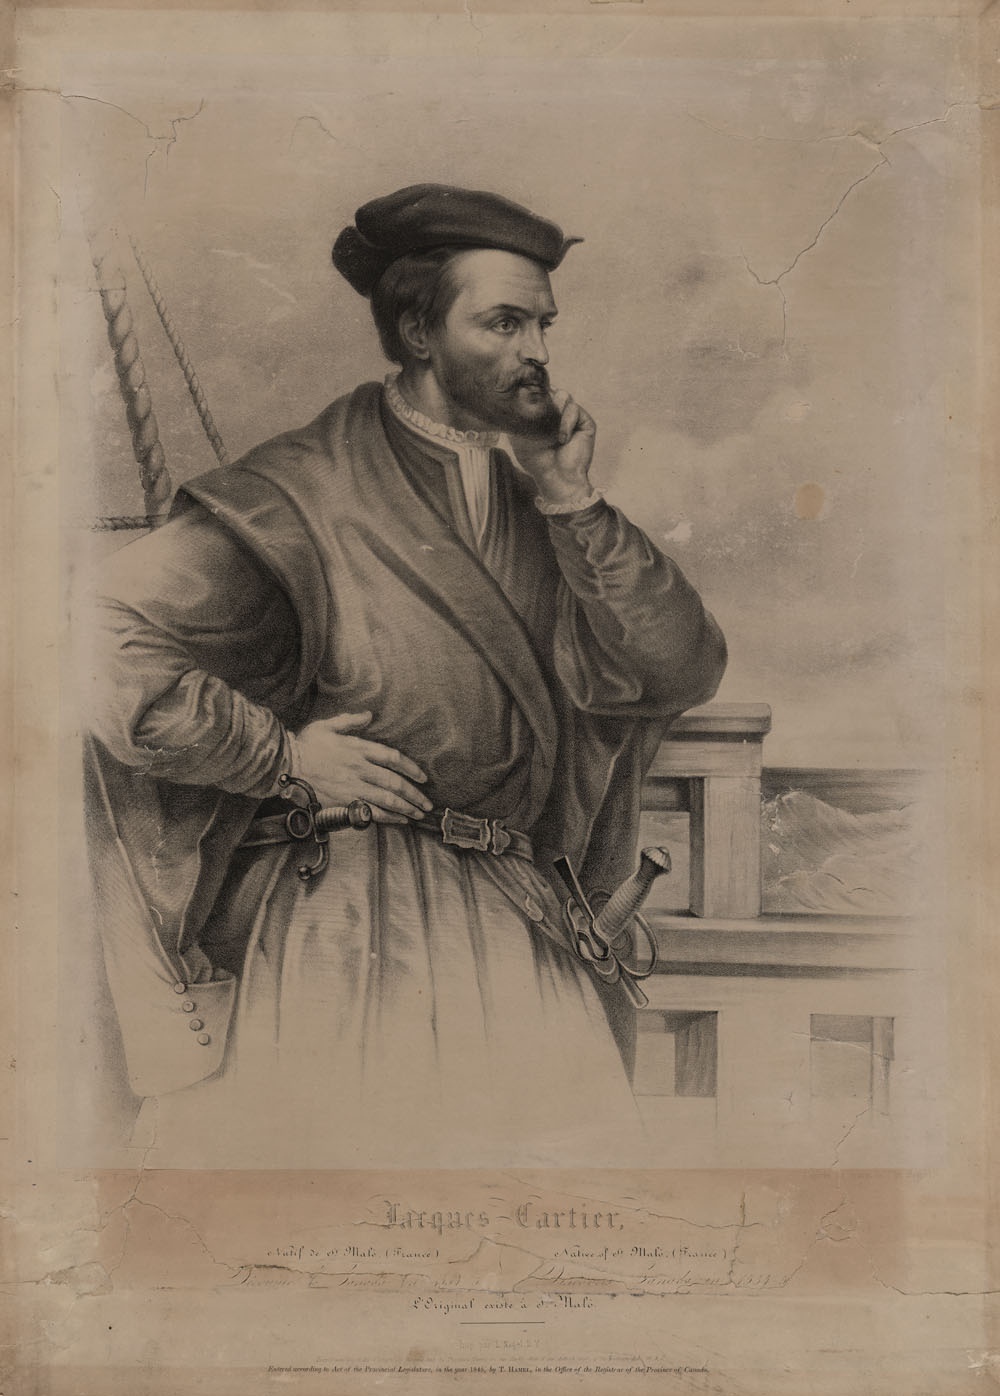 Sketch of a painting by François Riss, circa 1839. No contemporary portraits of Cartier are known.